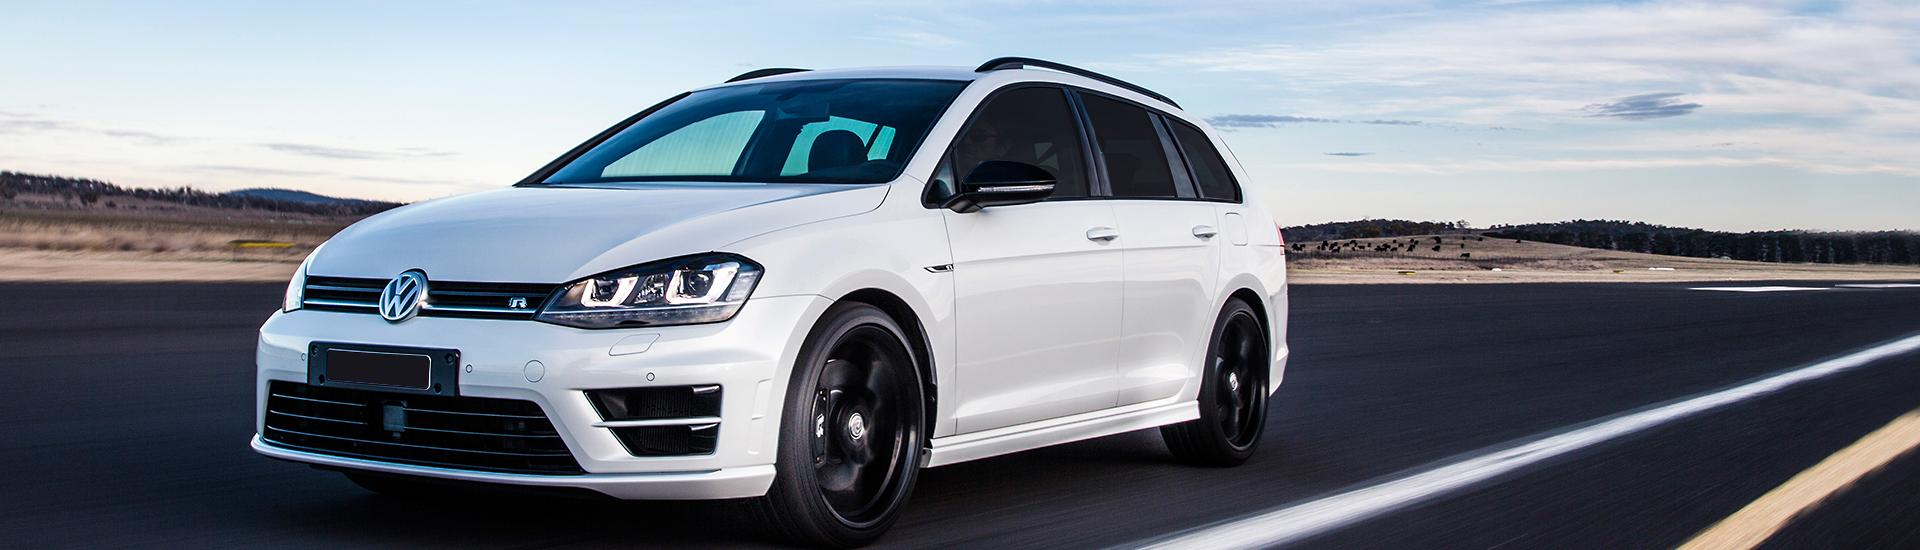 New Volkswagen Golf SUV Cars For Sale - carsales.com.au